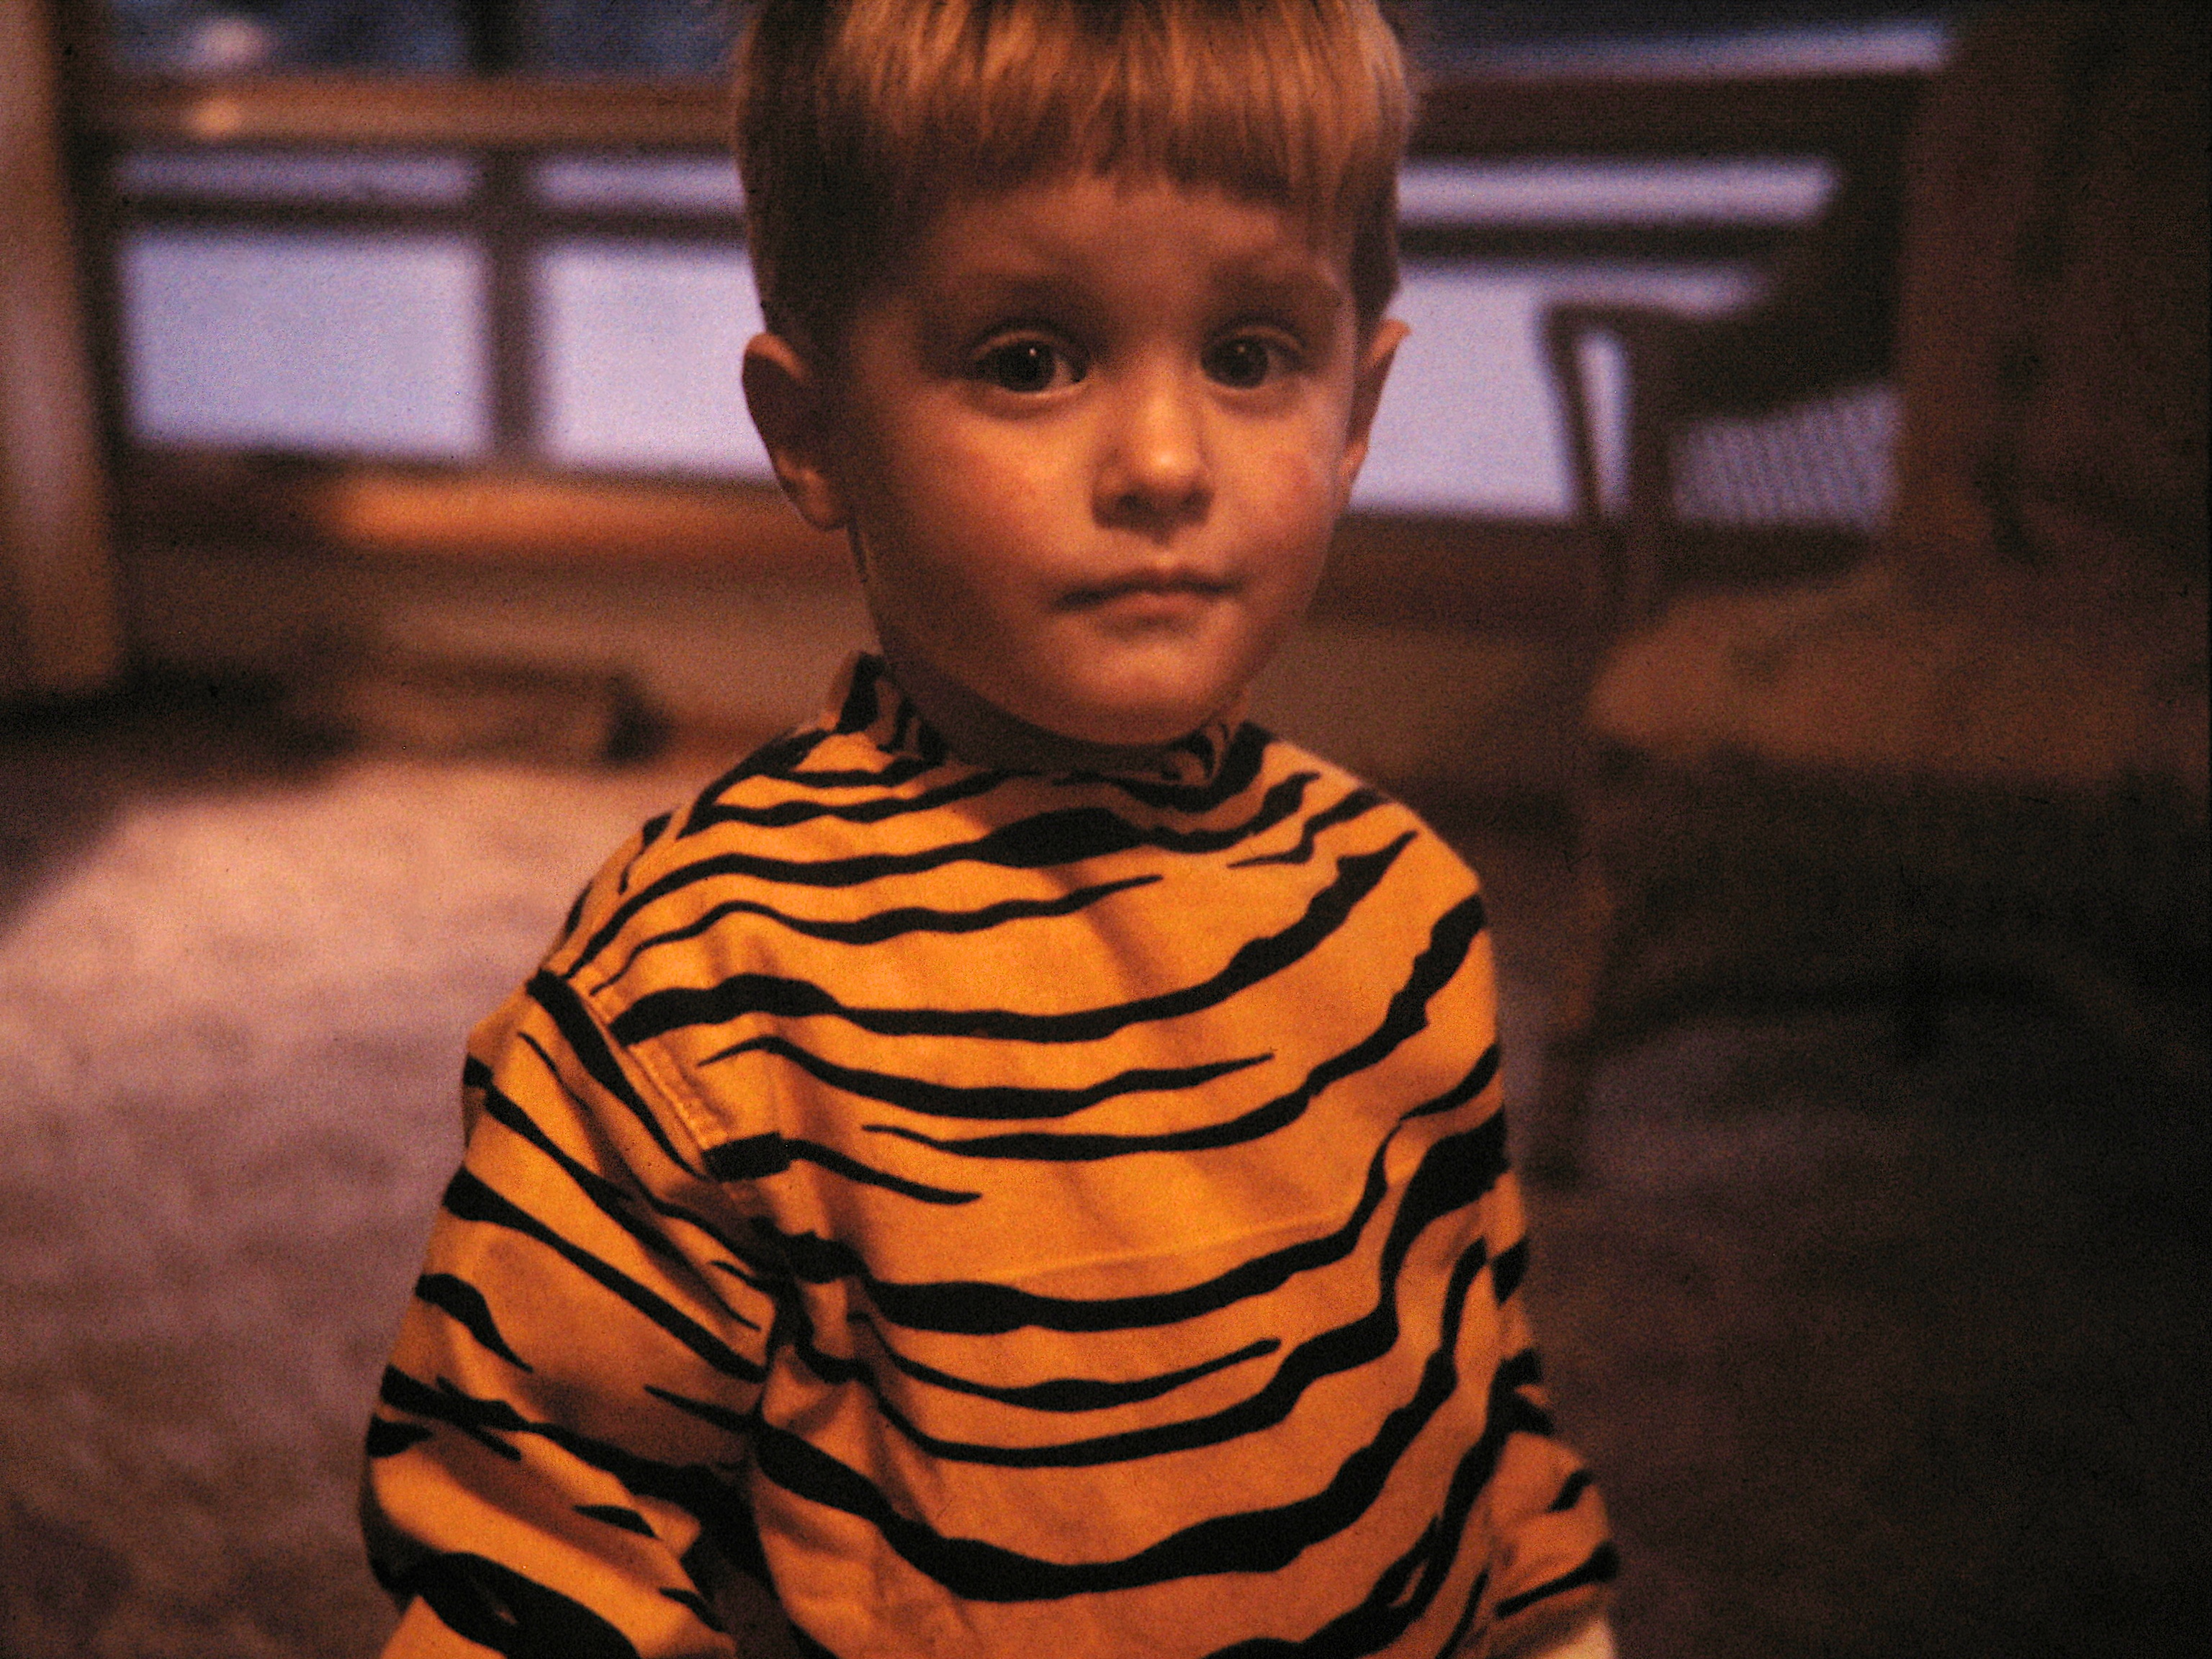 david c hanneman was a tiger for halloween 1964 - Tiger For Halloween